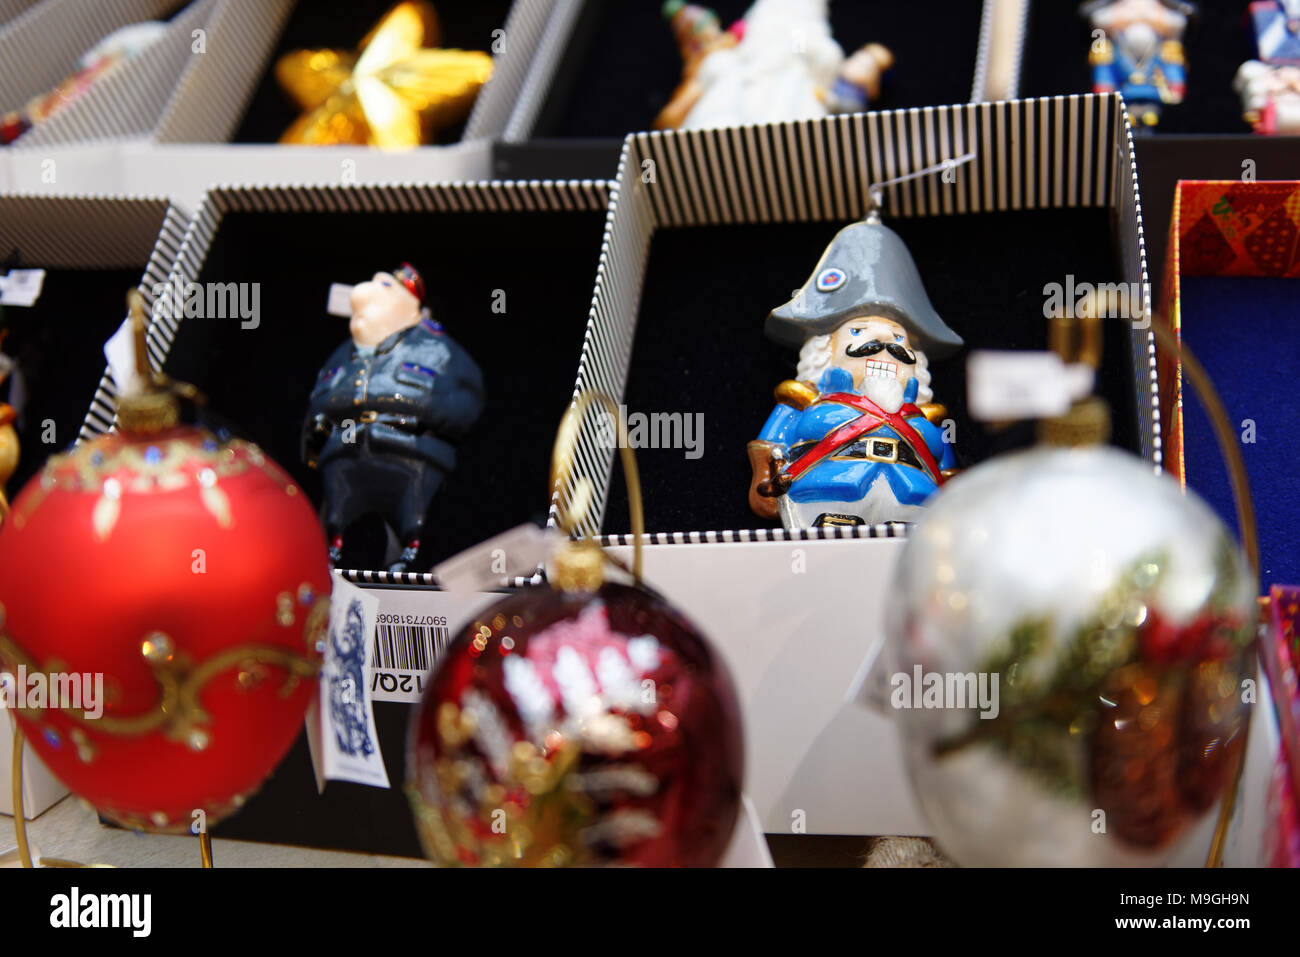 Moscow Russia - November 27 2015 Christmas gifts in the GUM. The traditional Christmas fair this year is inspired by memories about 1960s & Moscow Russia - November 27 2015: Christmas gifts in the GUM. The ...